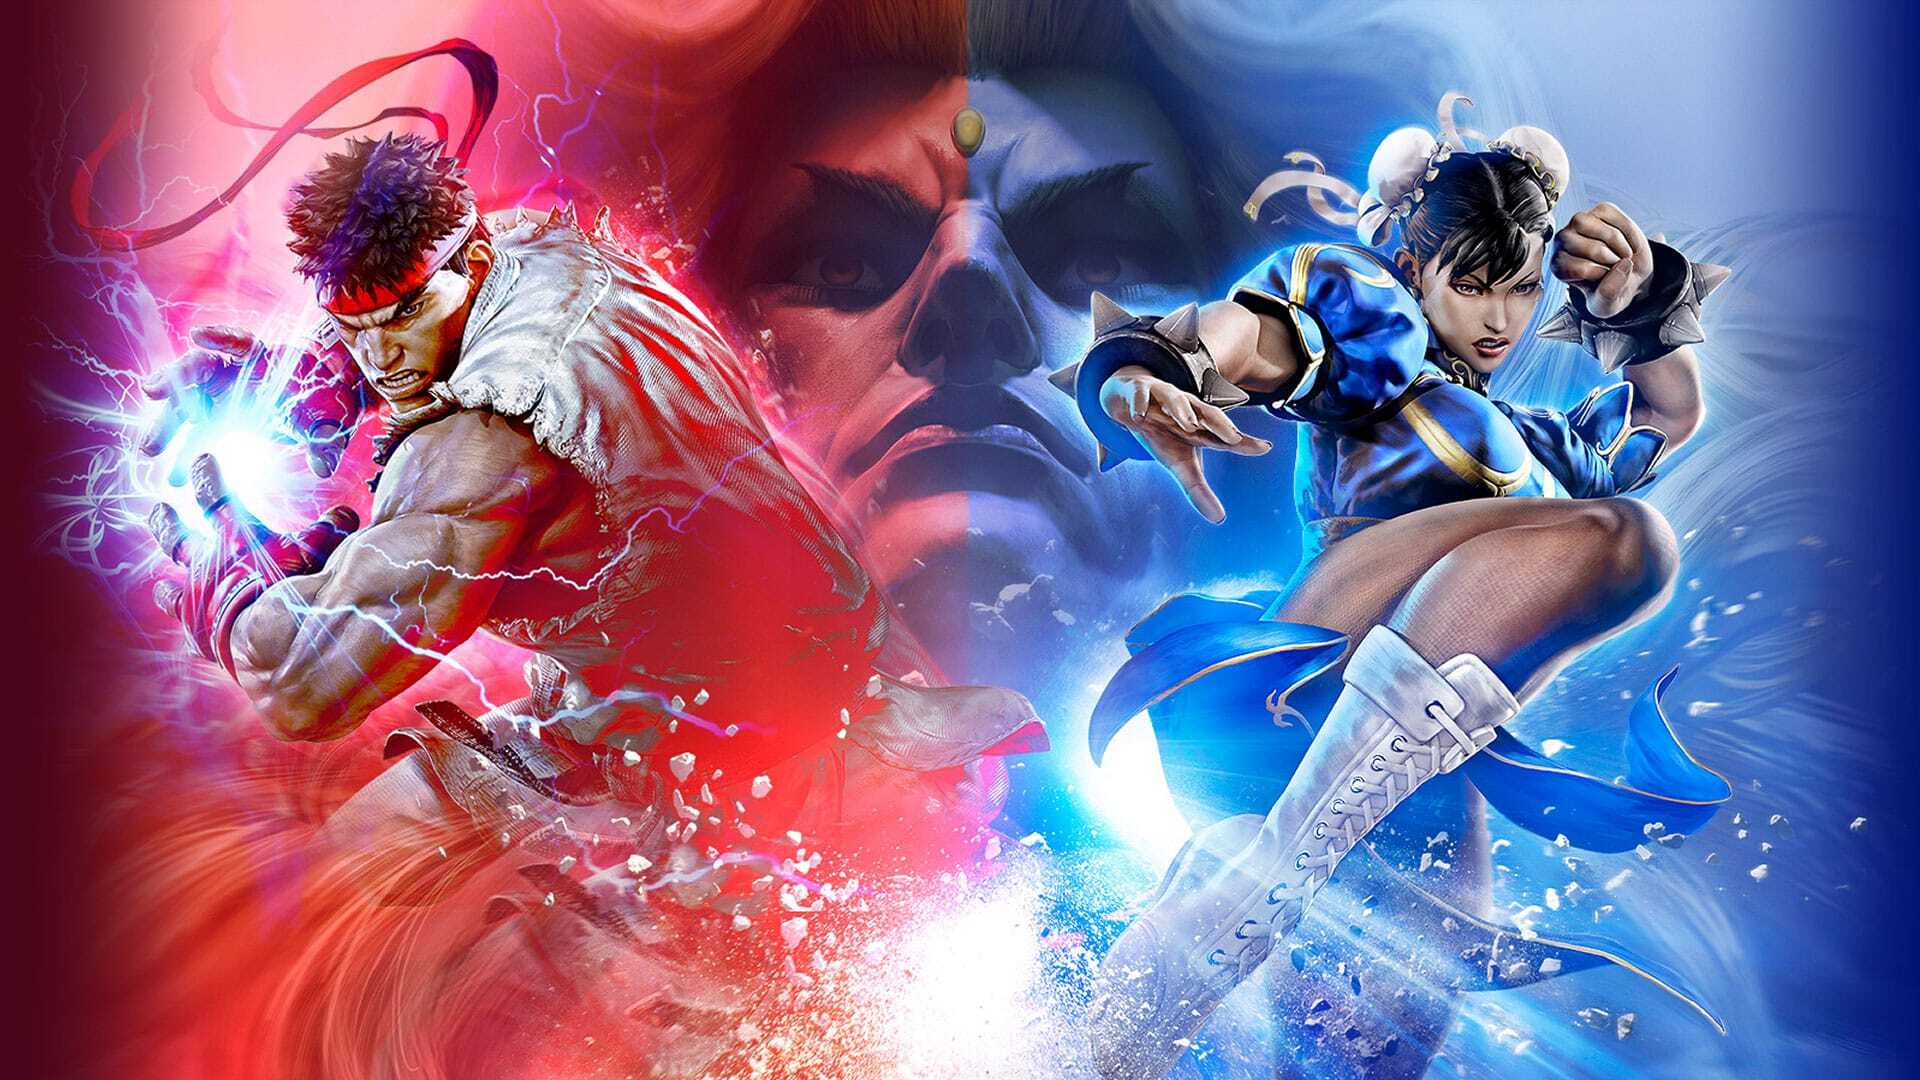 Capcom revealed new details on the characters, stages and other content coming to the fifth and final season ofStreet Fighter V: Champion Edition